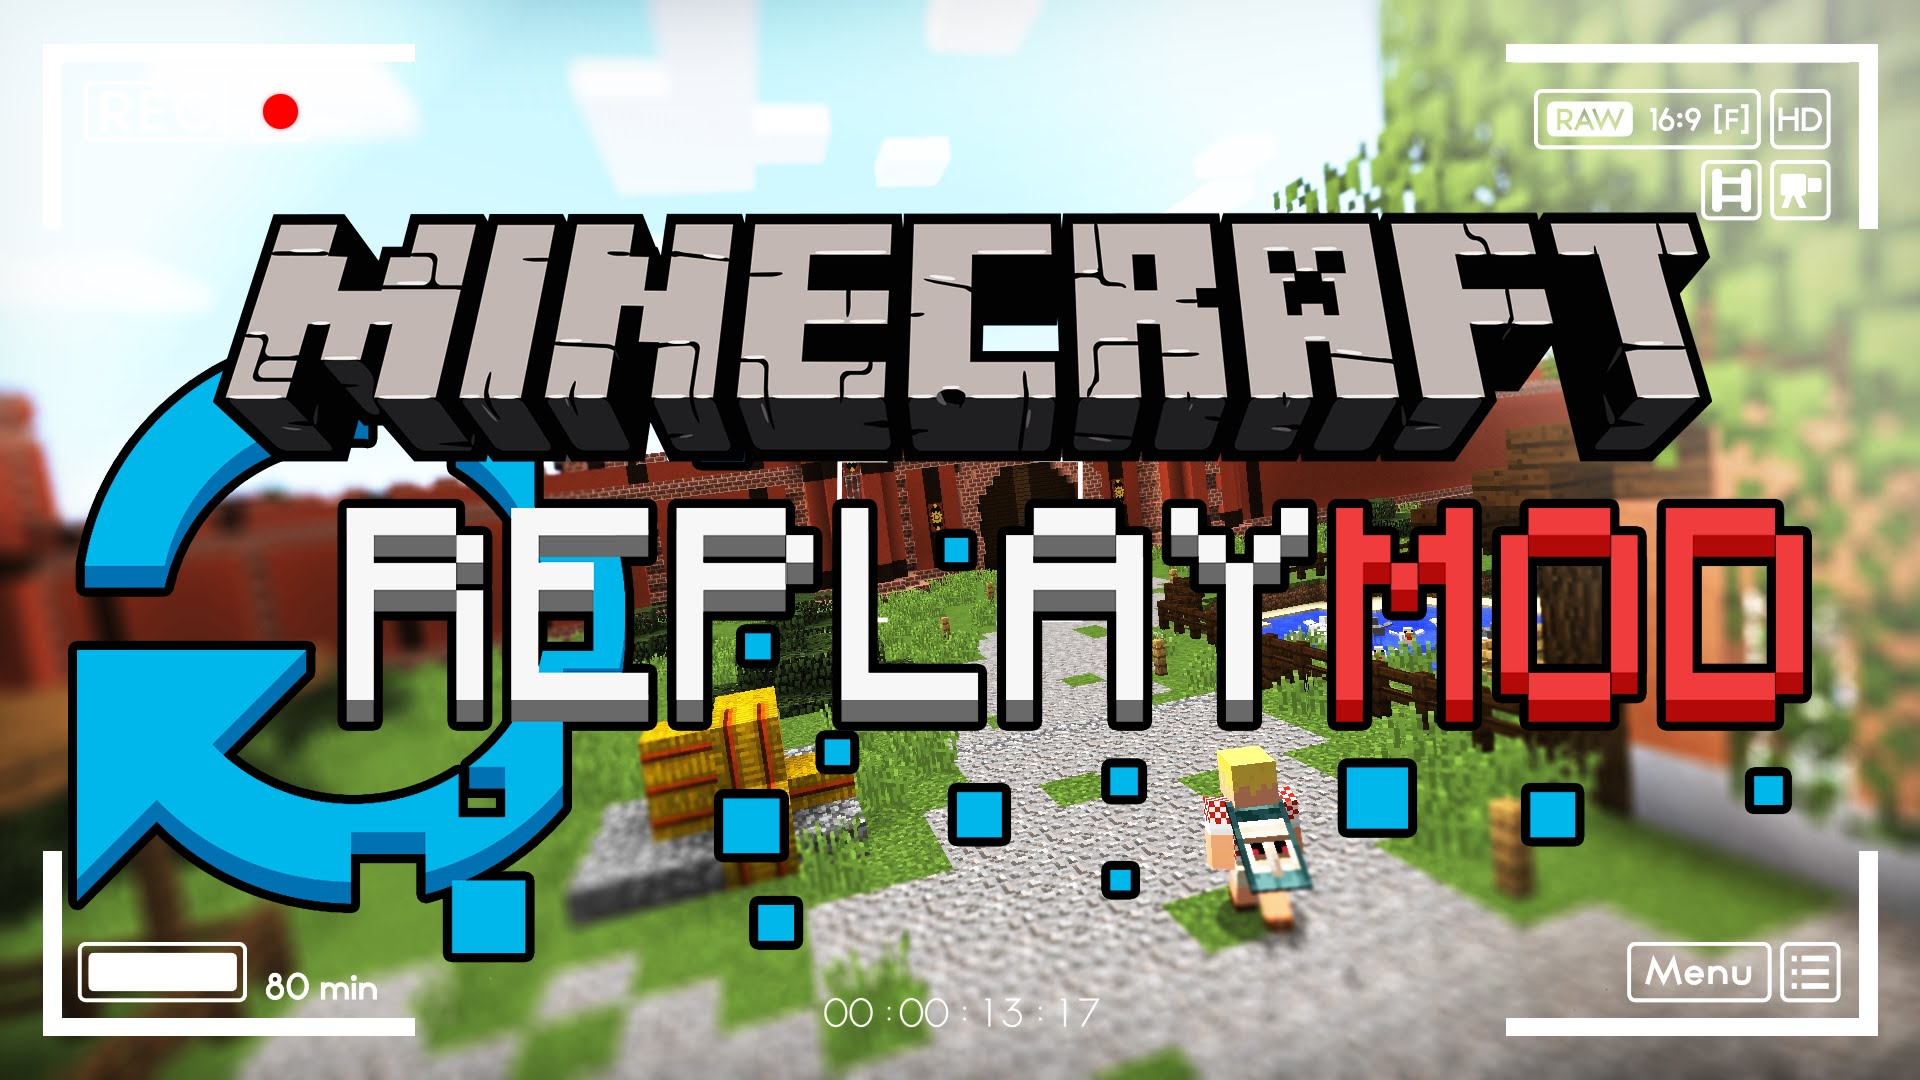 Replay Mod Record Relive Share Your Experience - Minecraft spiele die man runterladen kann